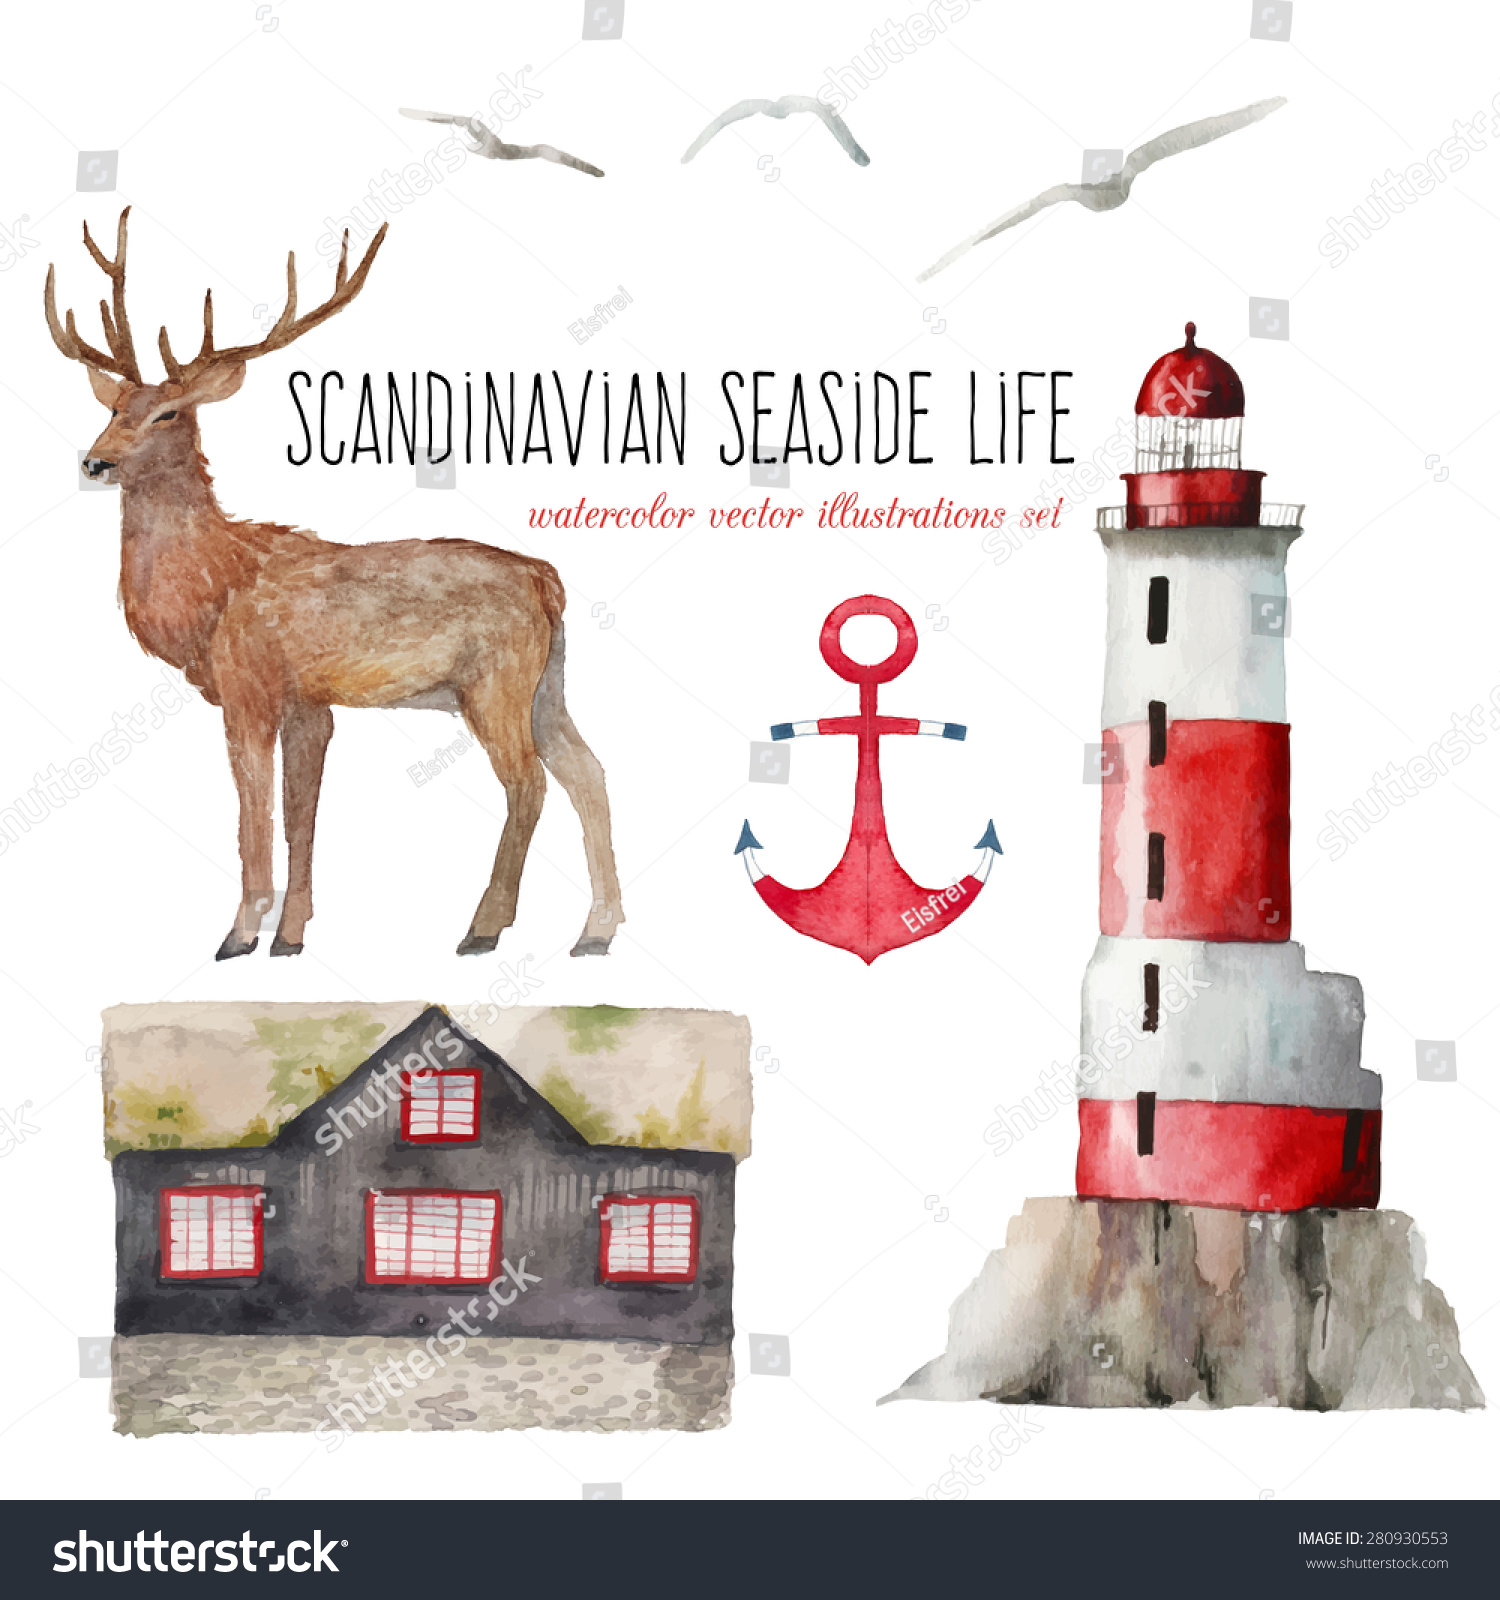 Watercolor scandinavian seaside life set hand stock vector 280930553 shutterstock - Scandinavian homes the charm of the north ...